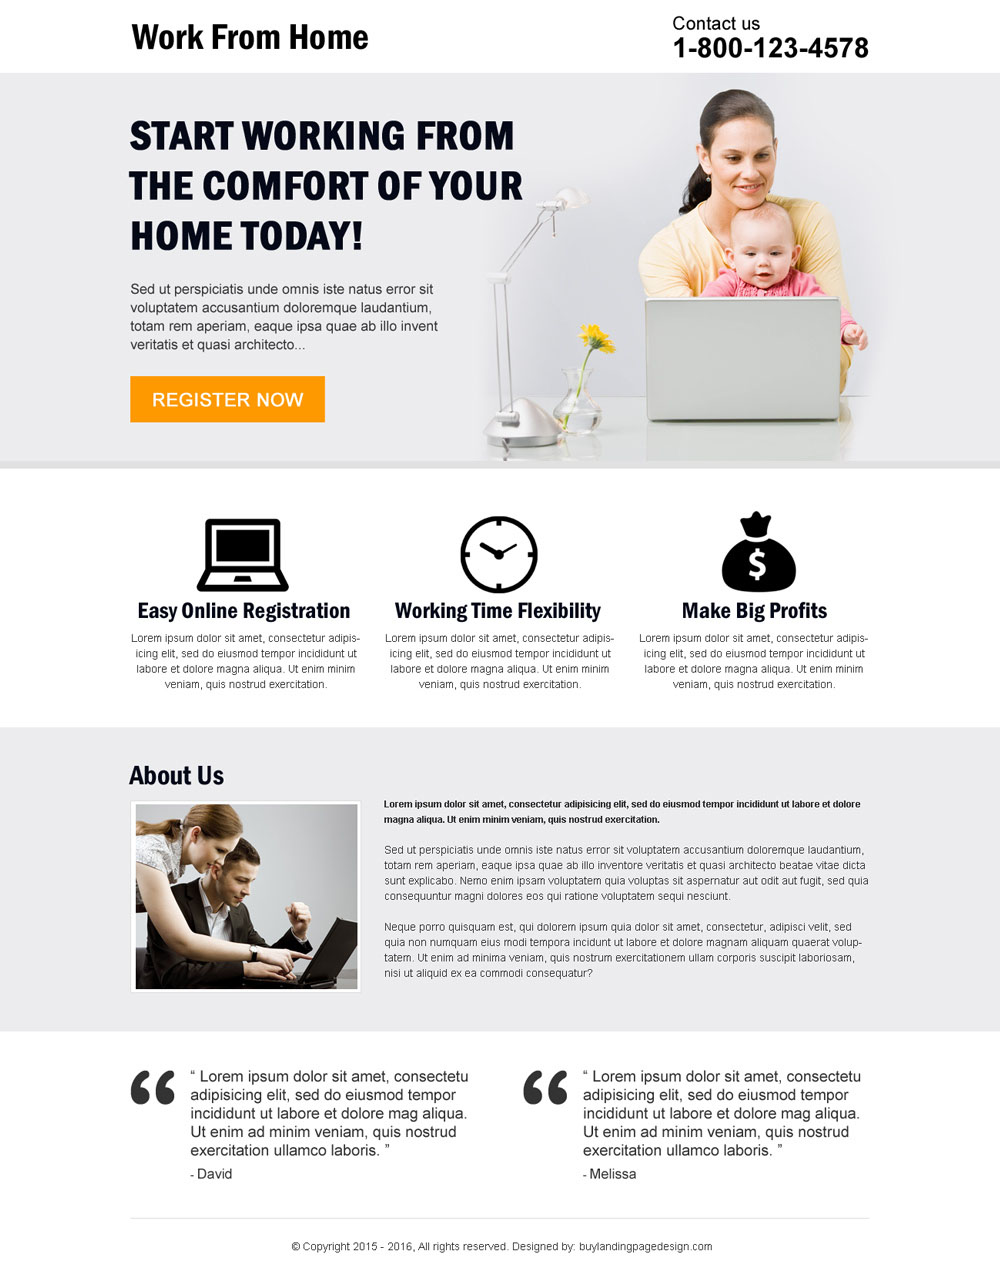 work-from-home-minimal-landing-page-design-templates-that-converts-026